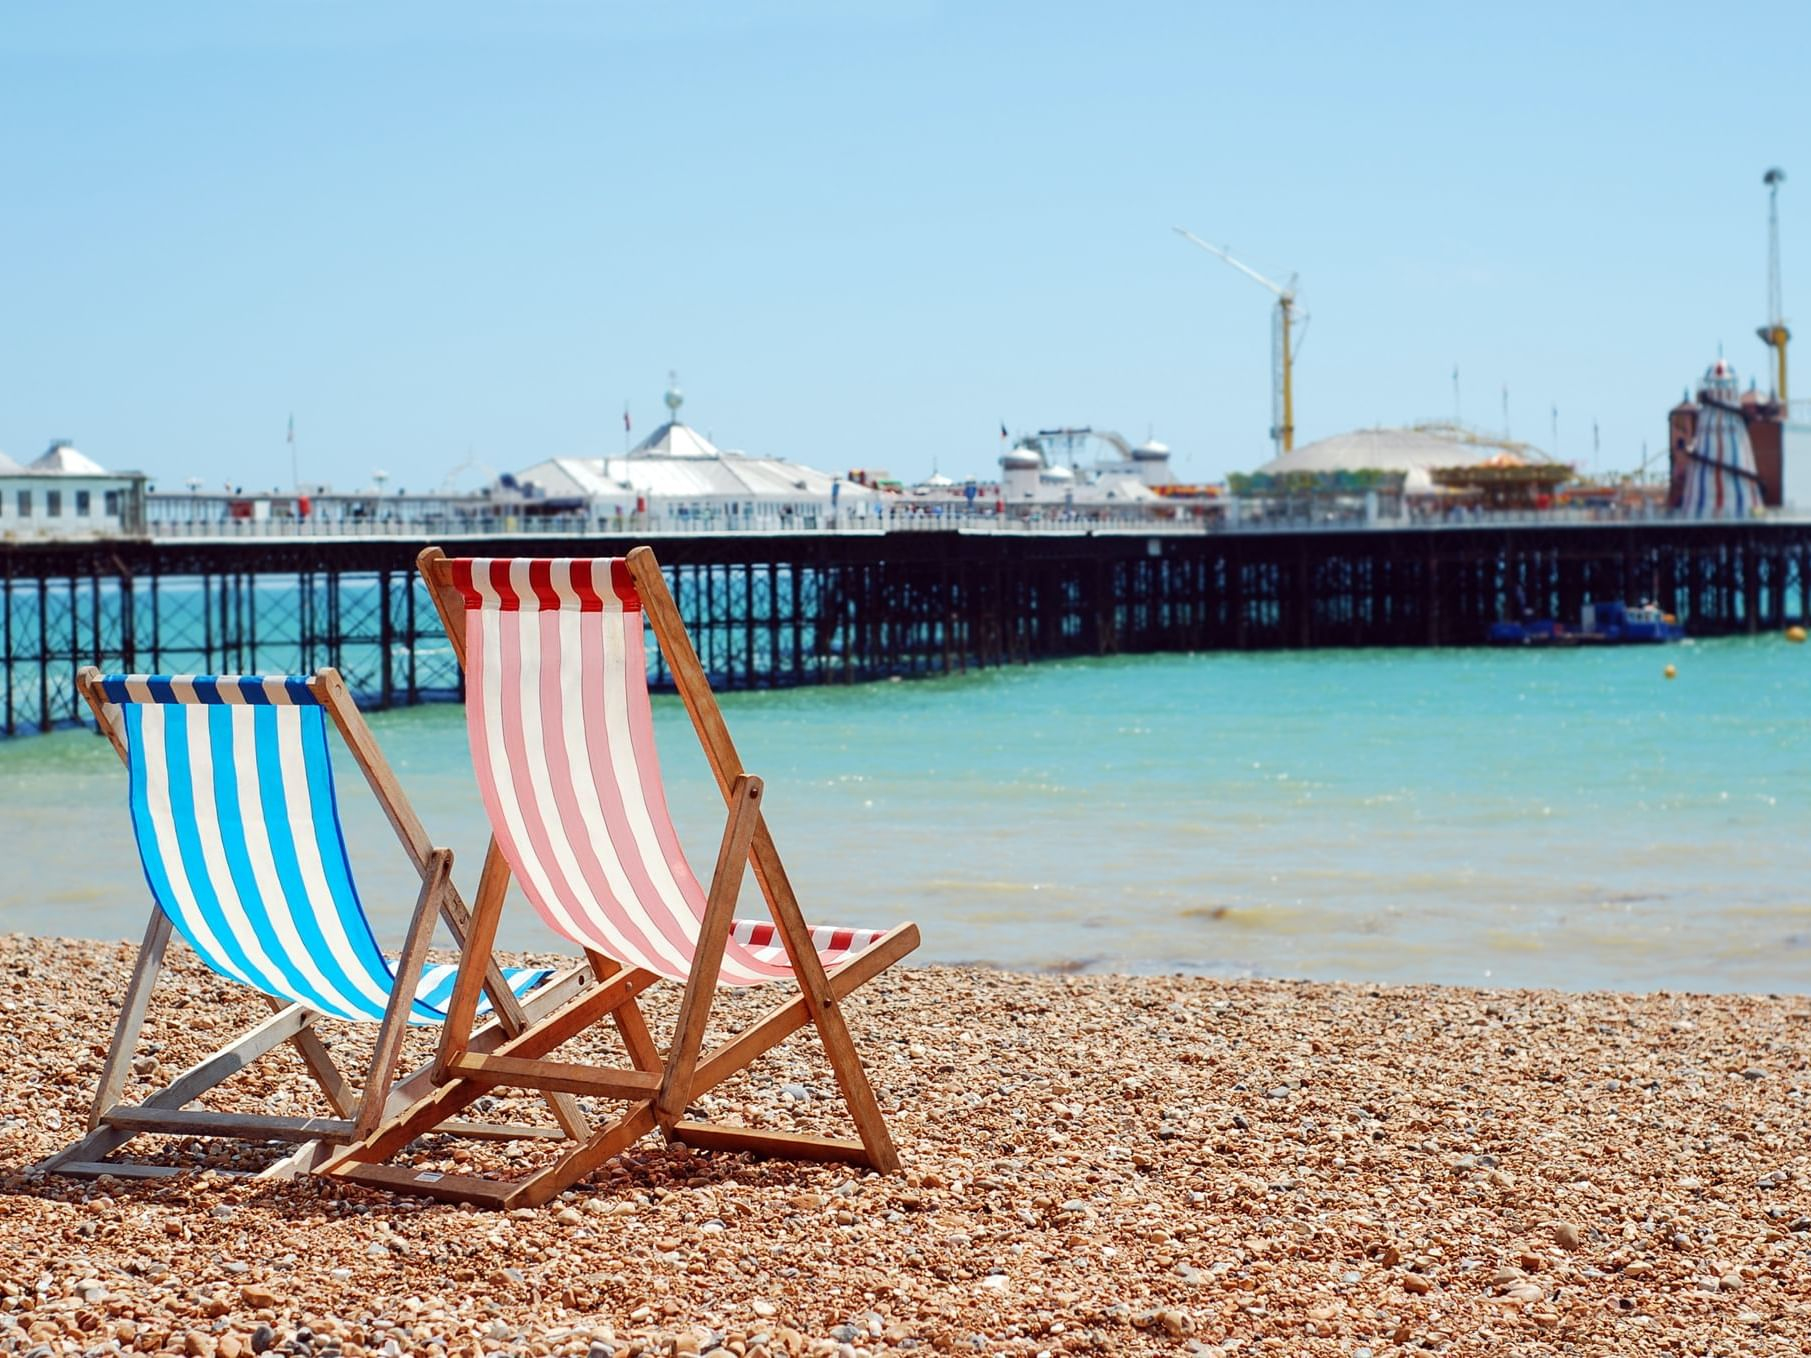 Two beach chairs at the coast of the beach facing the Brighton Palace Pier